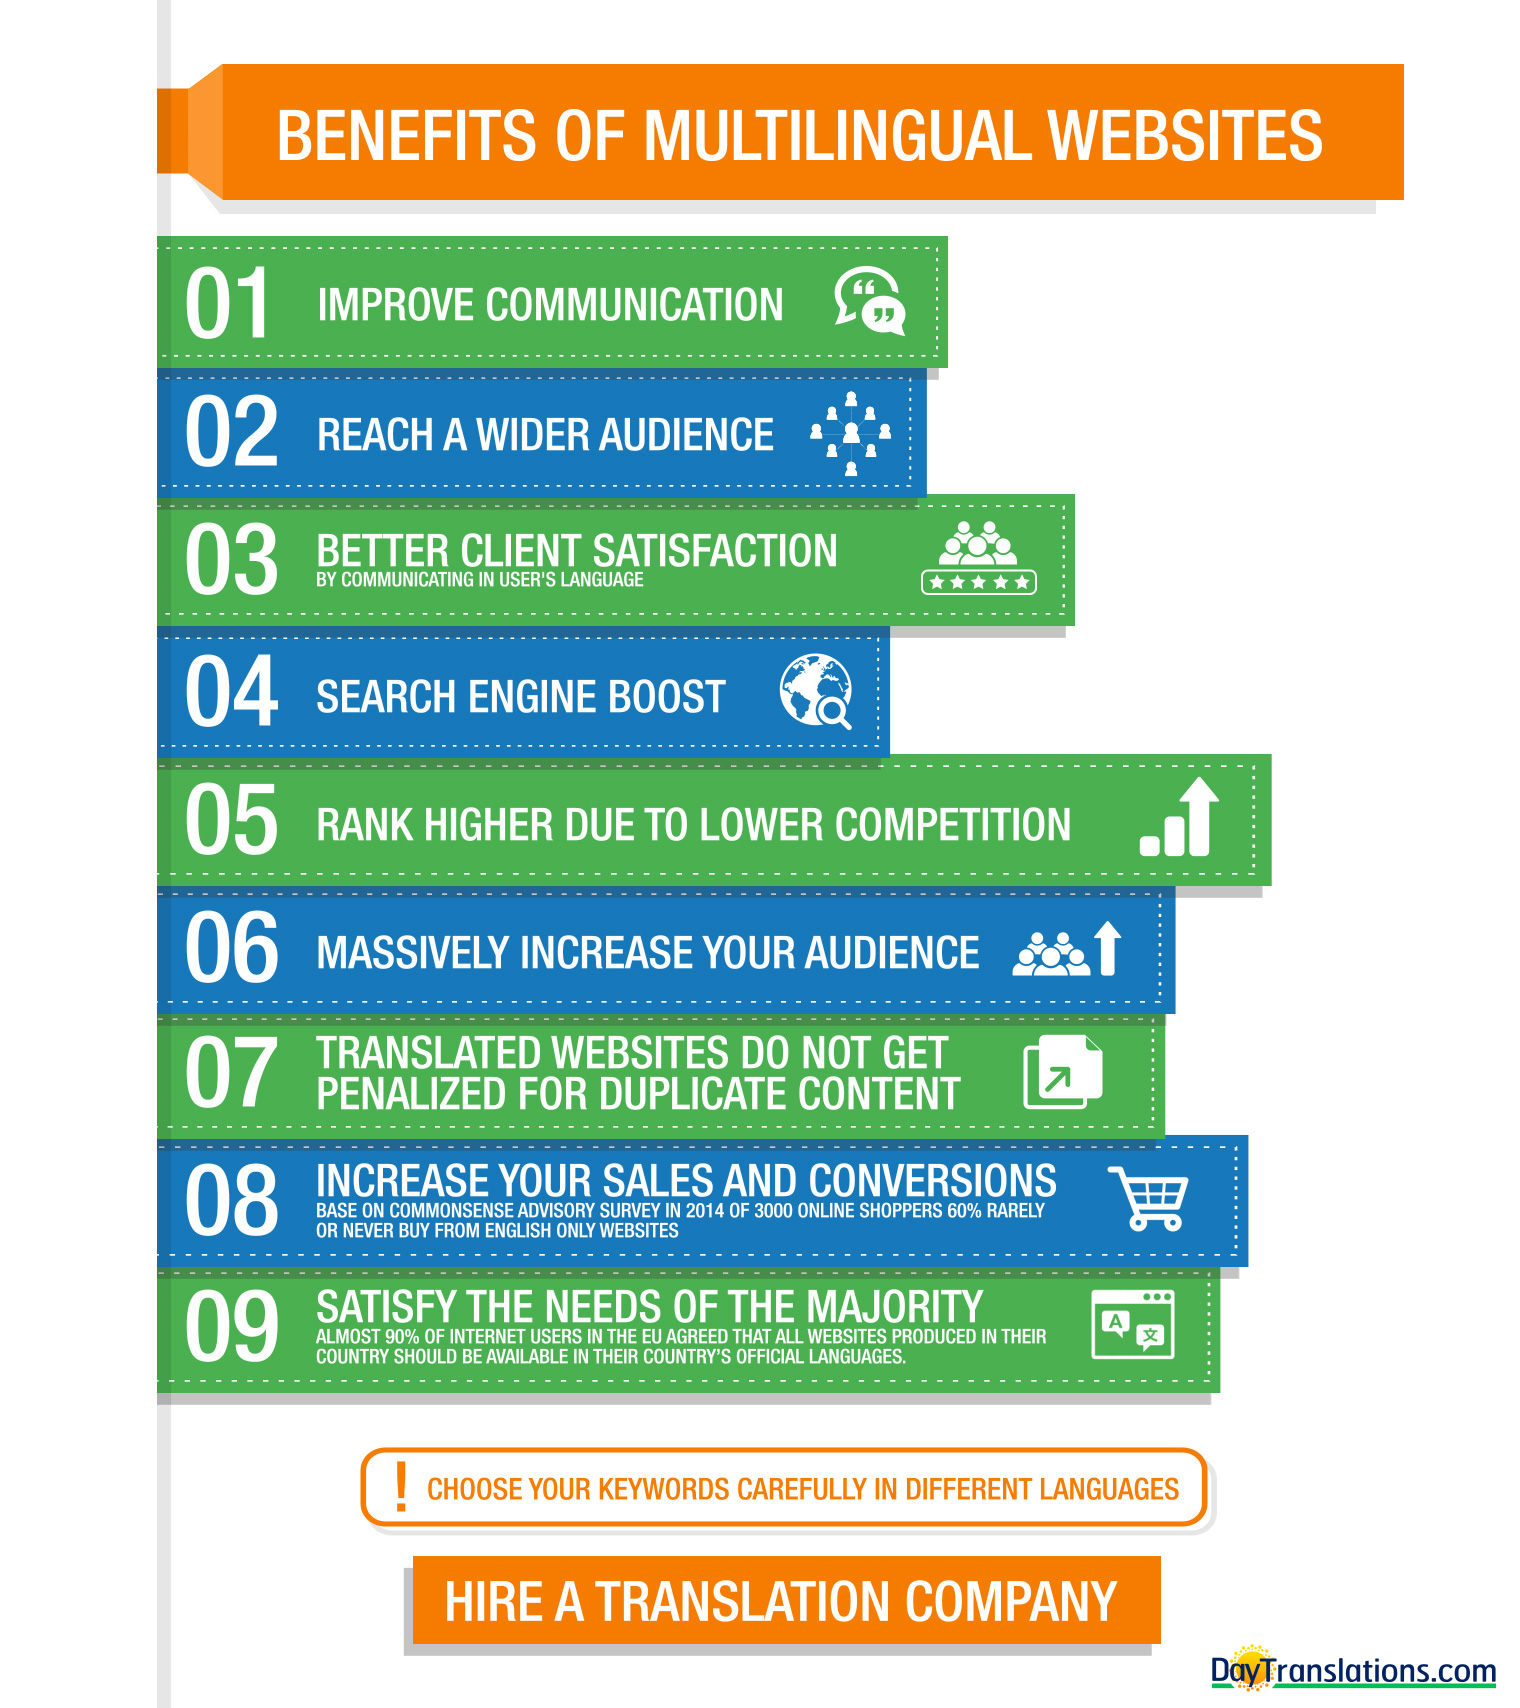 Best Info And News Site: Multilingual Websites: The Top 9 Benefits